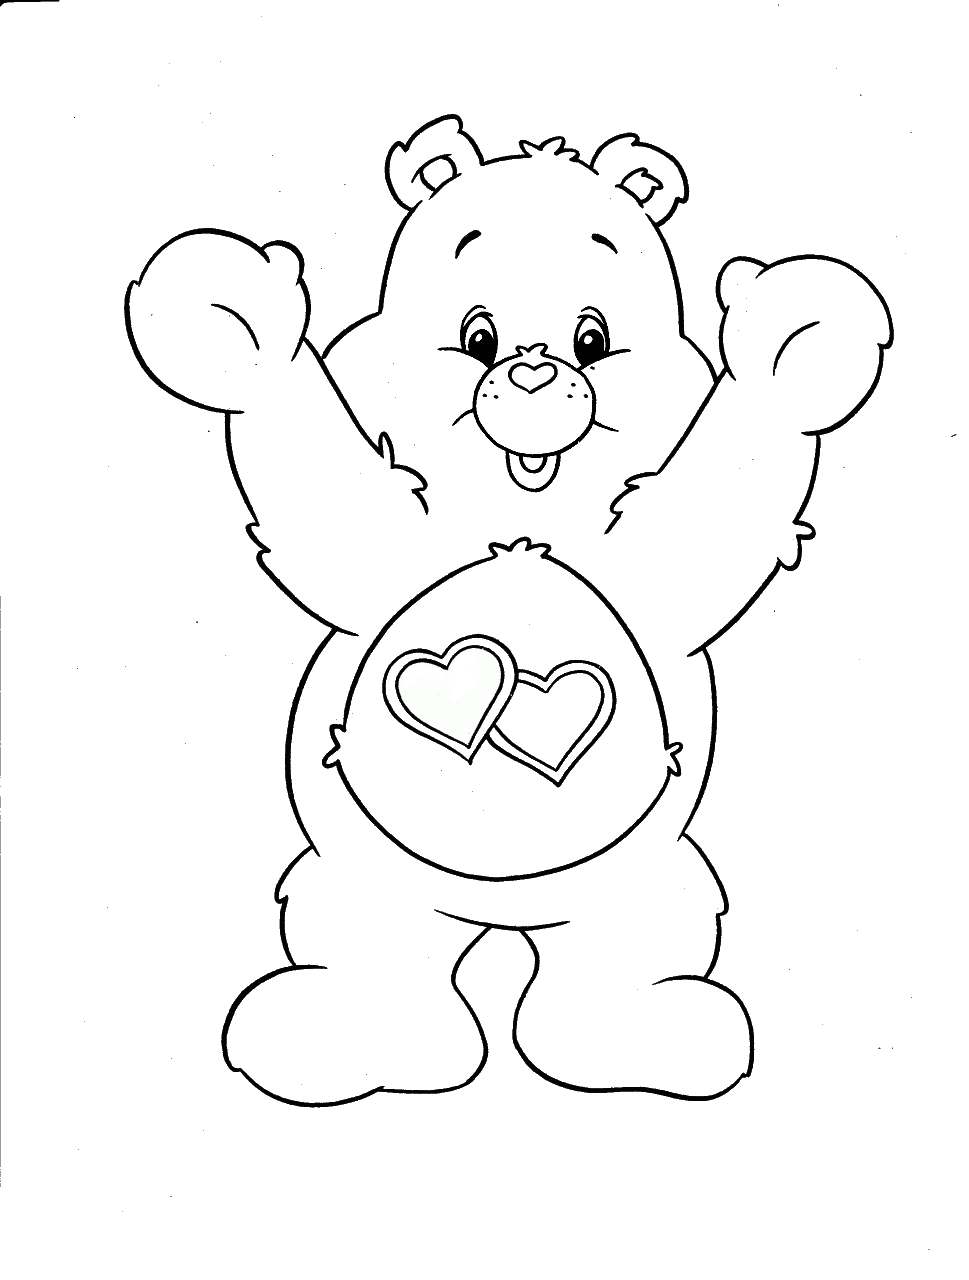 Care Bears Coloring Pages - Bing Images | Ausmalbilder | Pinterest ...